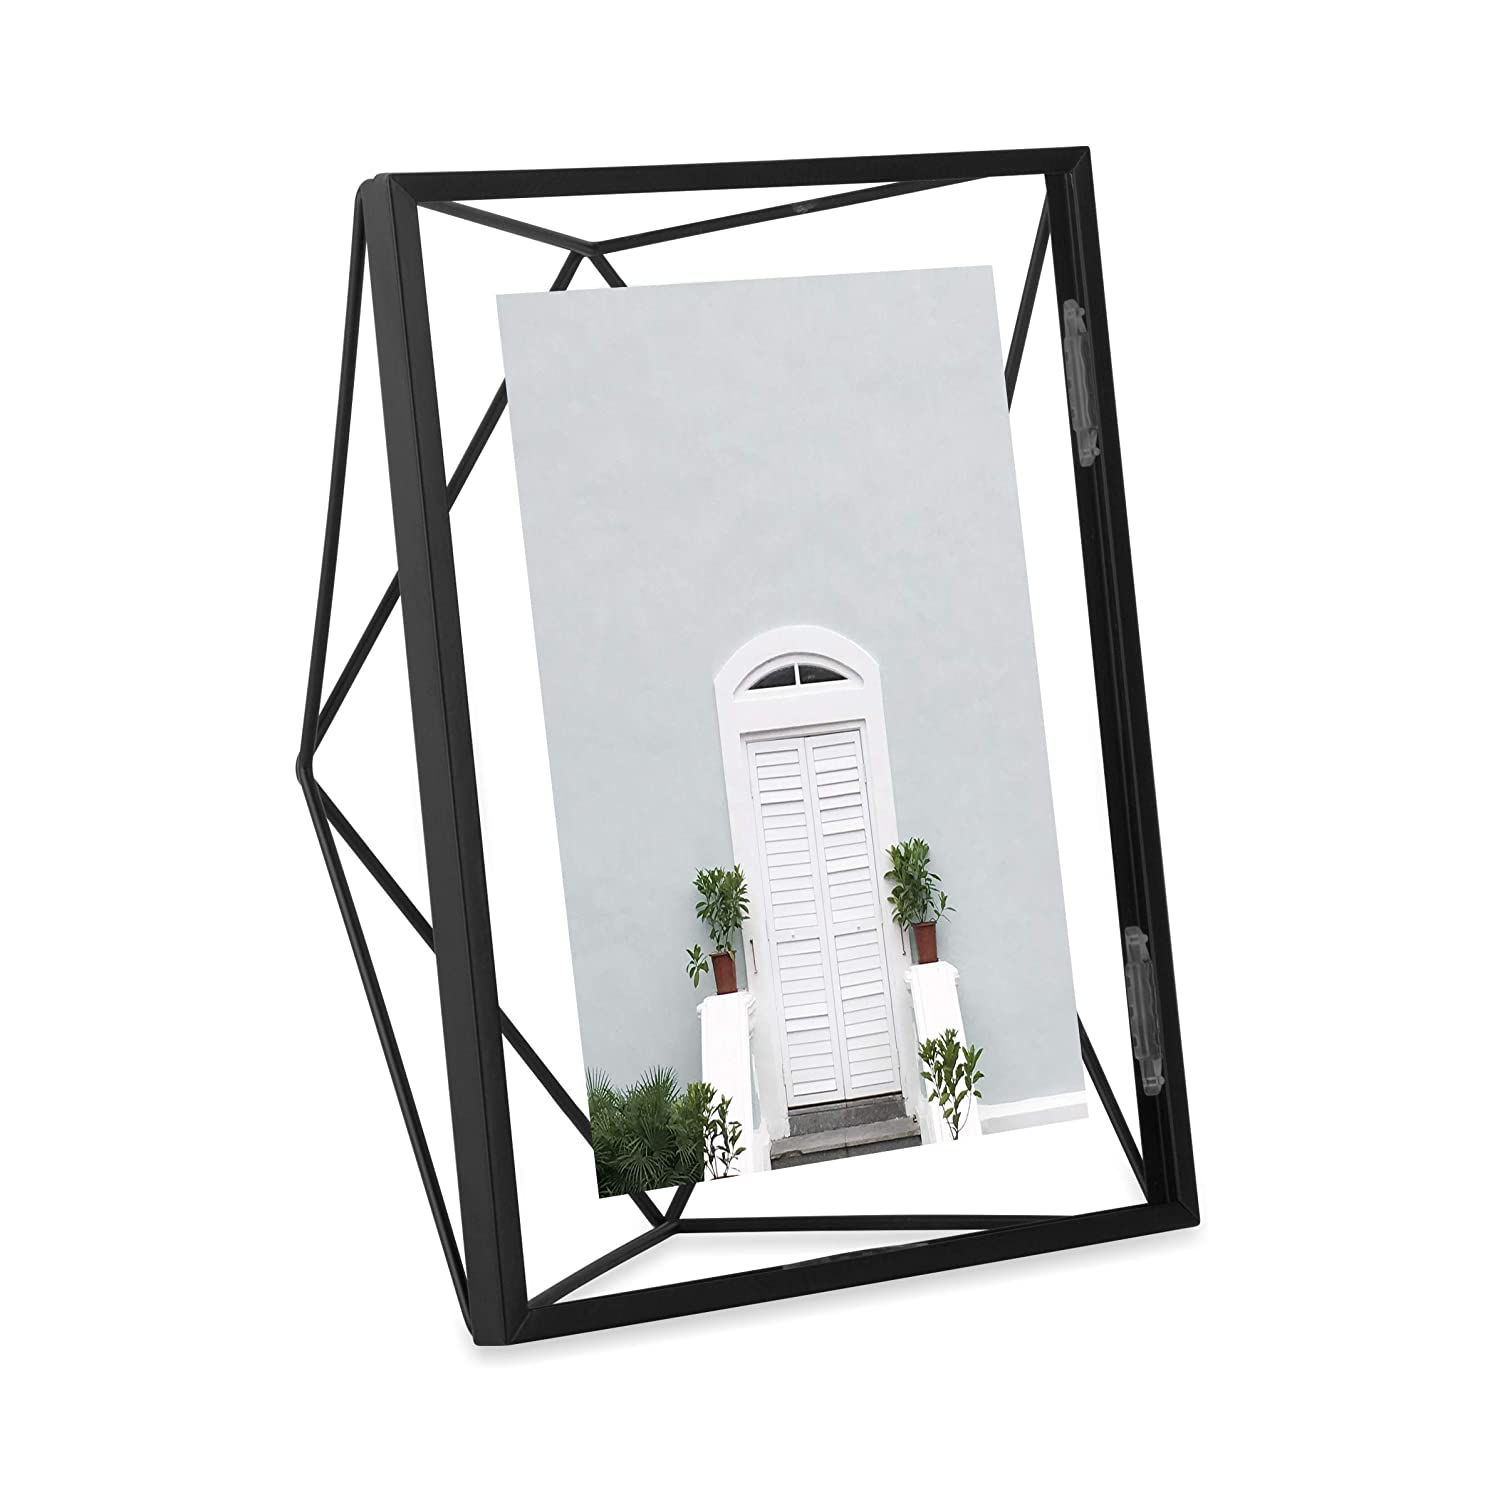 Umbra Prisma 4 x 4 Picture Frame – Floating Wall or Desk Photo Display for Pictures, Art, Illustrations, Graphic Text & More, Metal, Black 313017-040